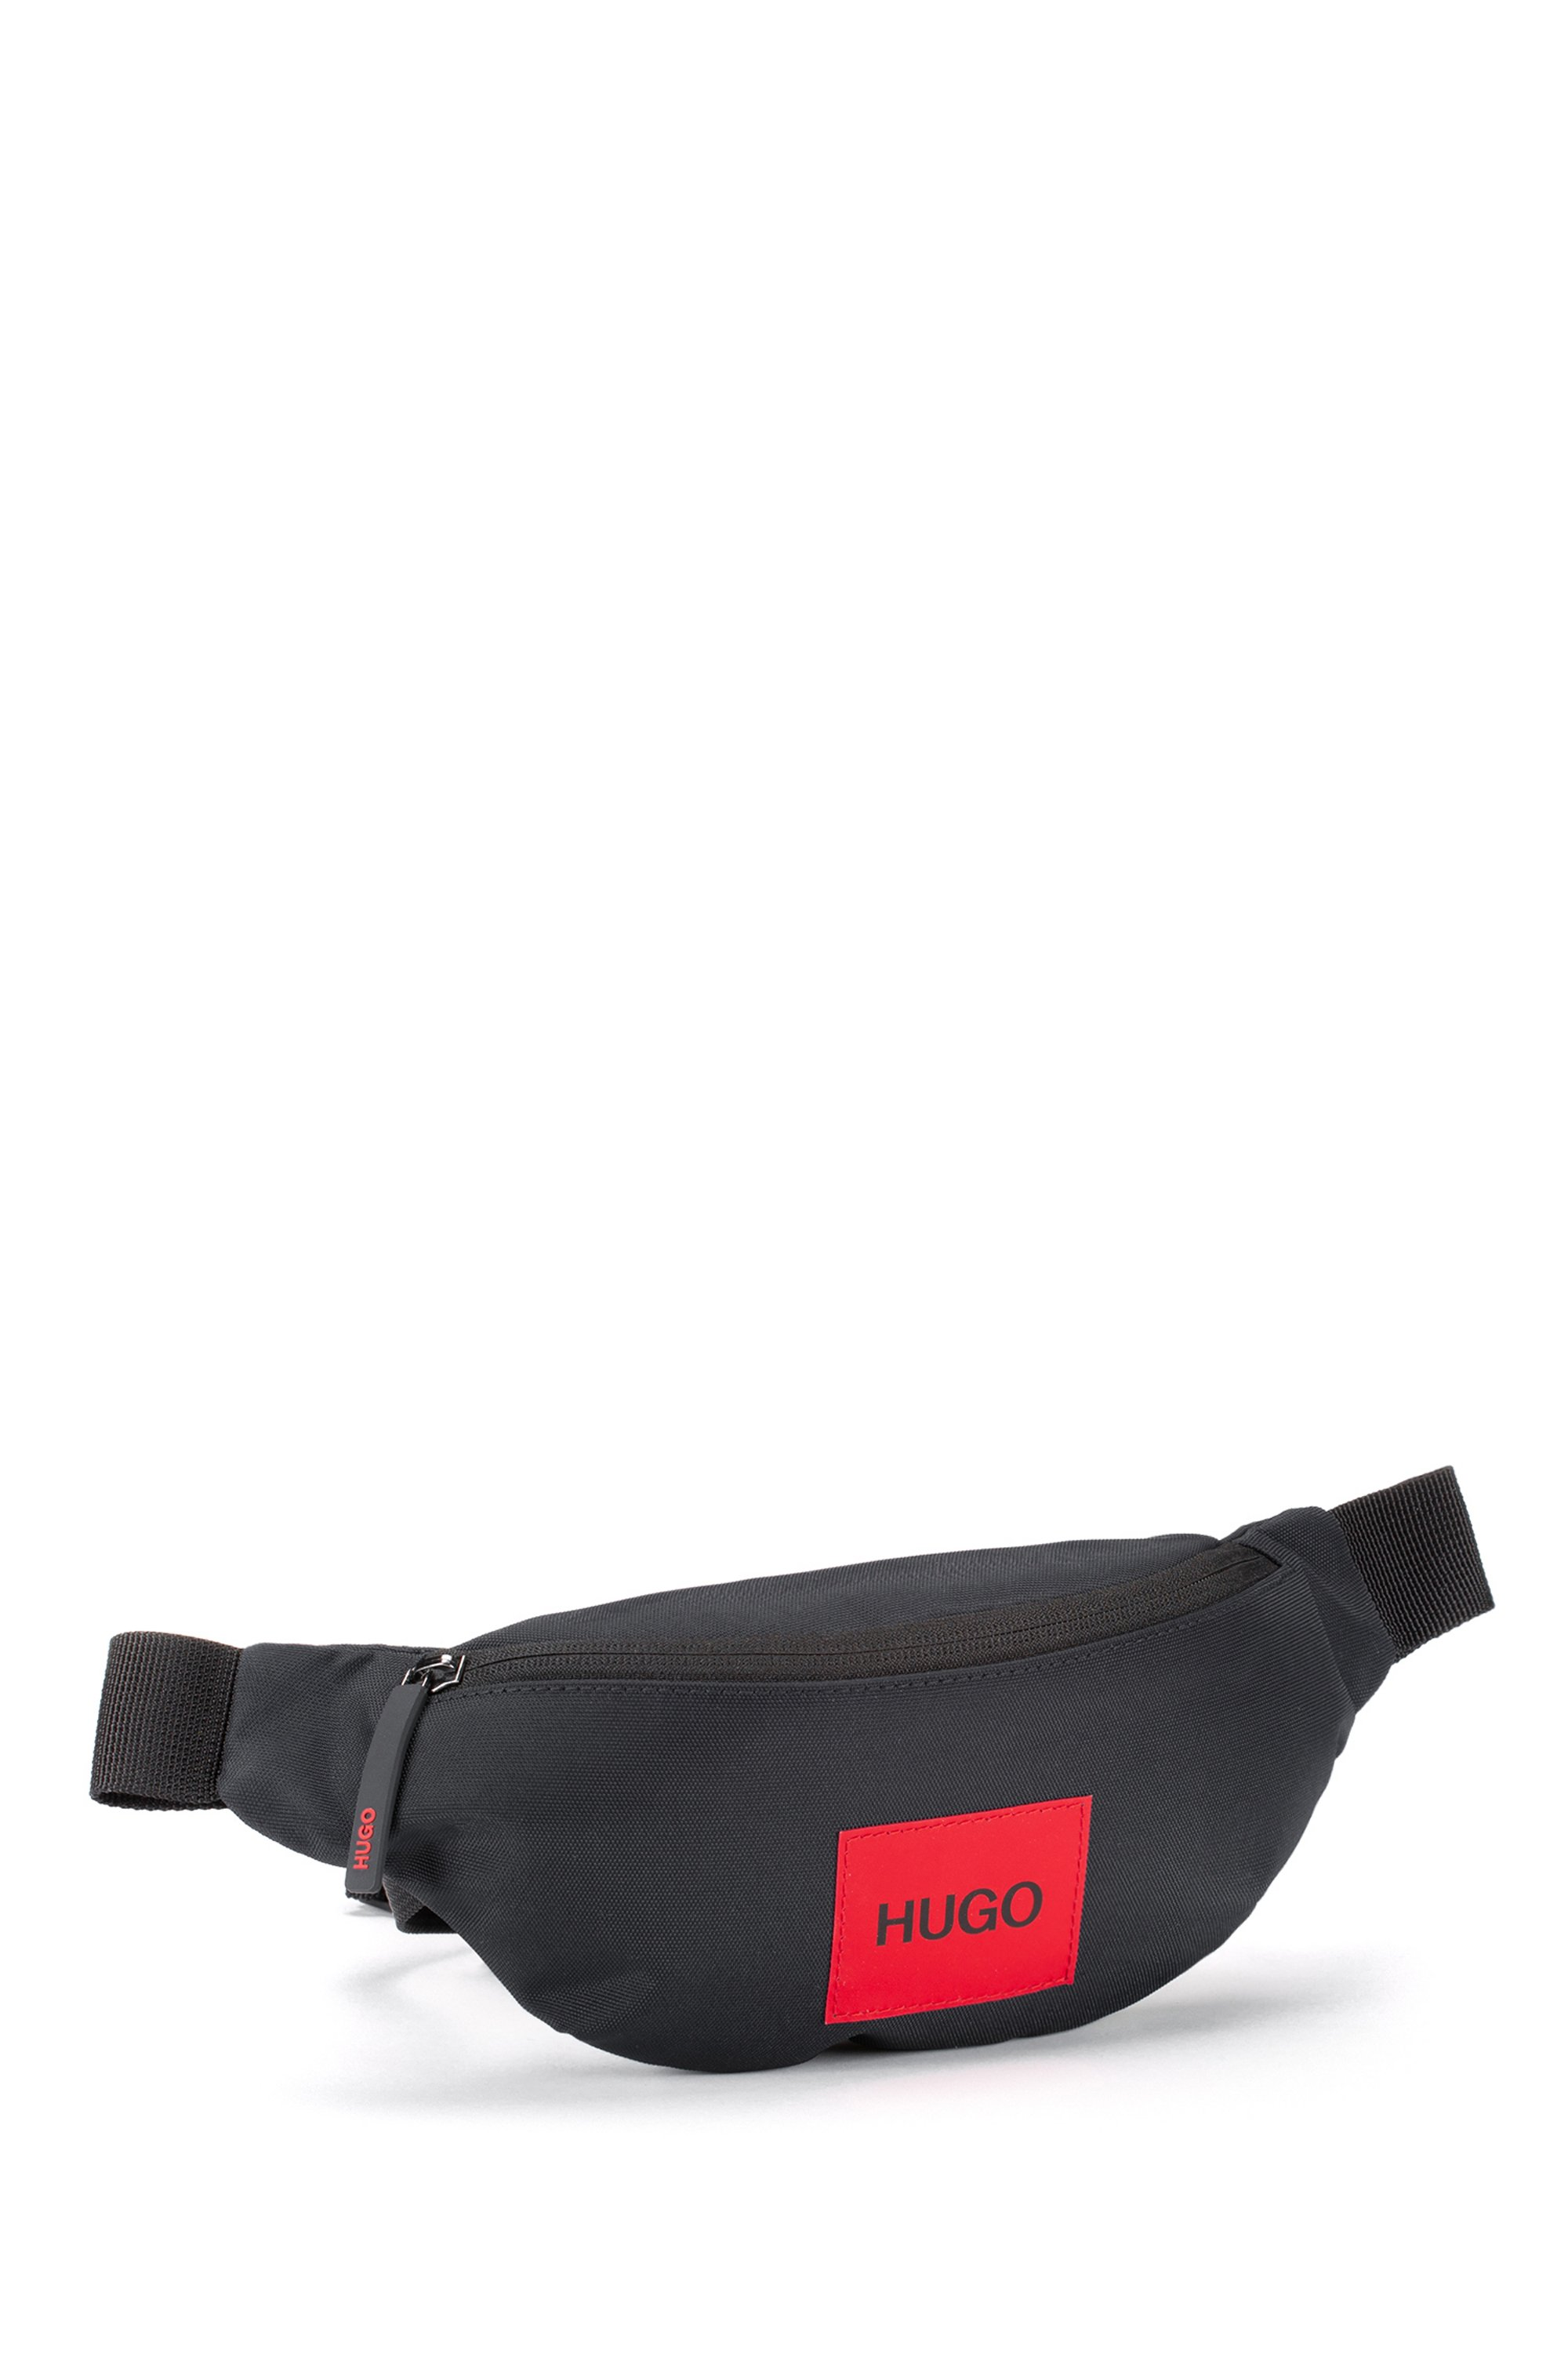 Belt bag in recycled nylon with red logo label